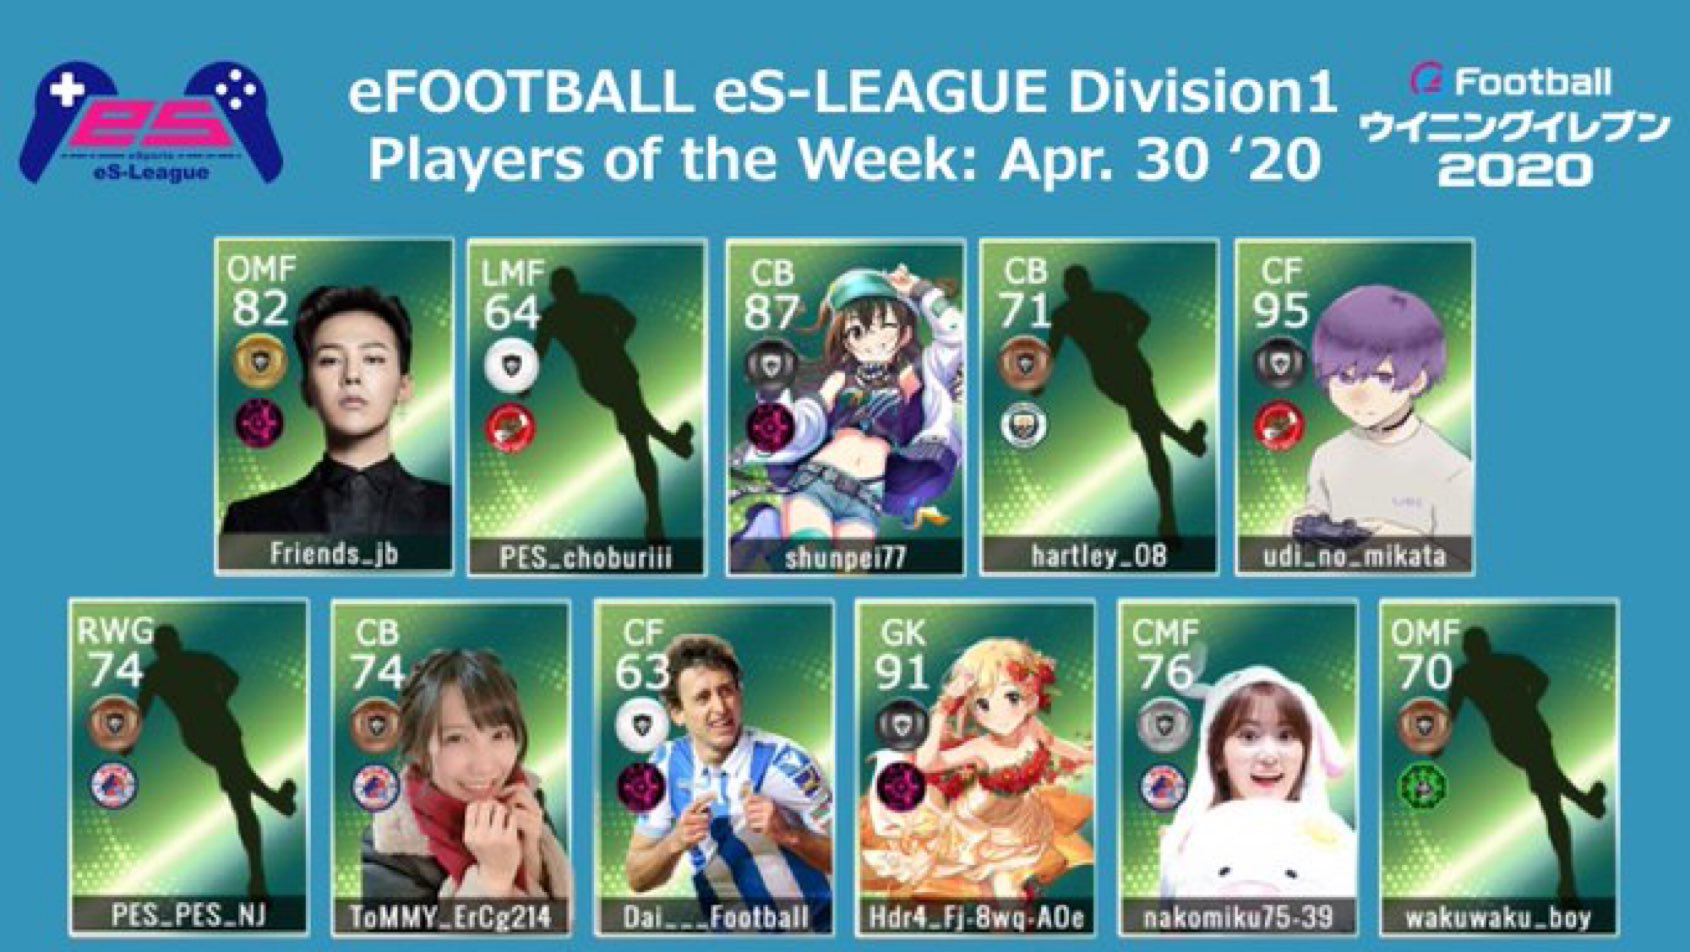 eFOOTBALL eS-LEAGUE 5th Division1 Players Of The Week 11